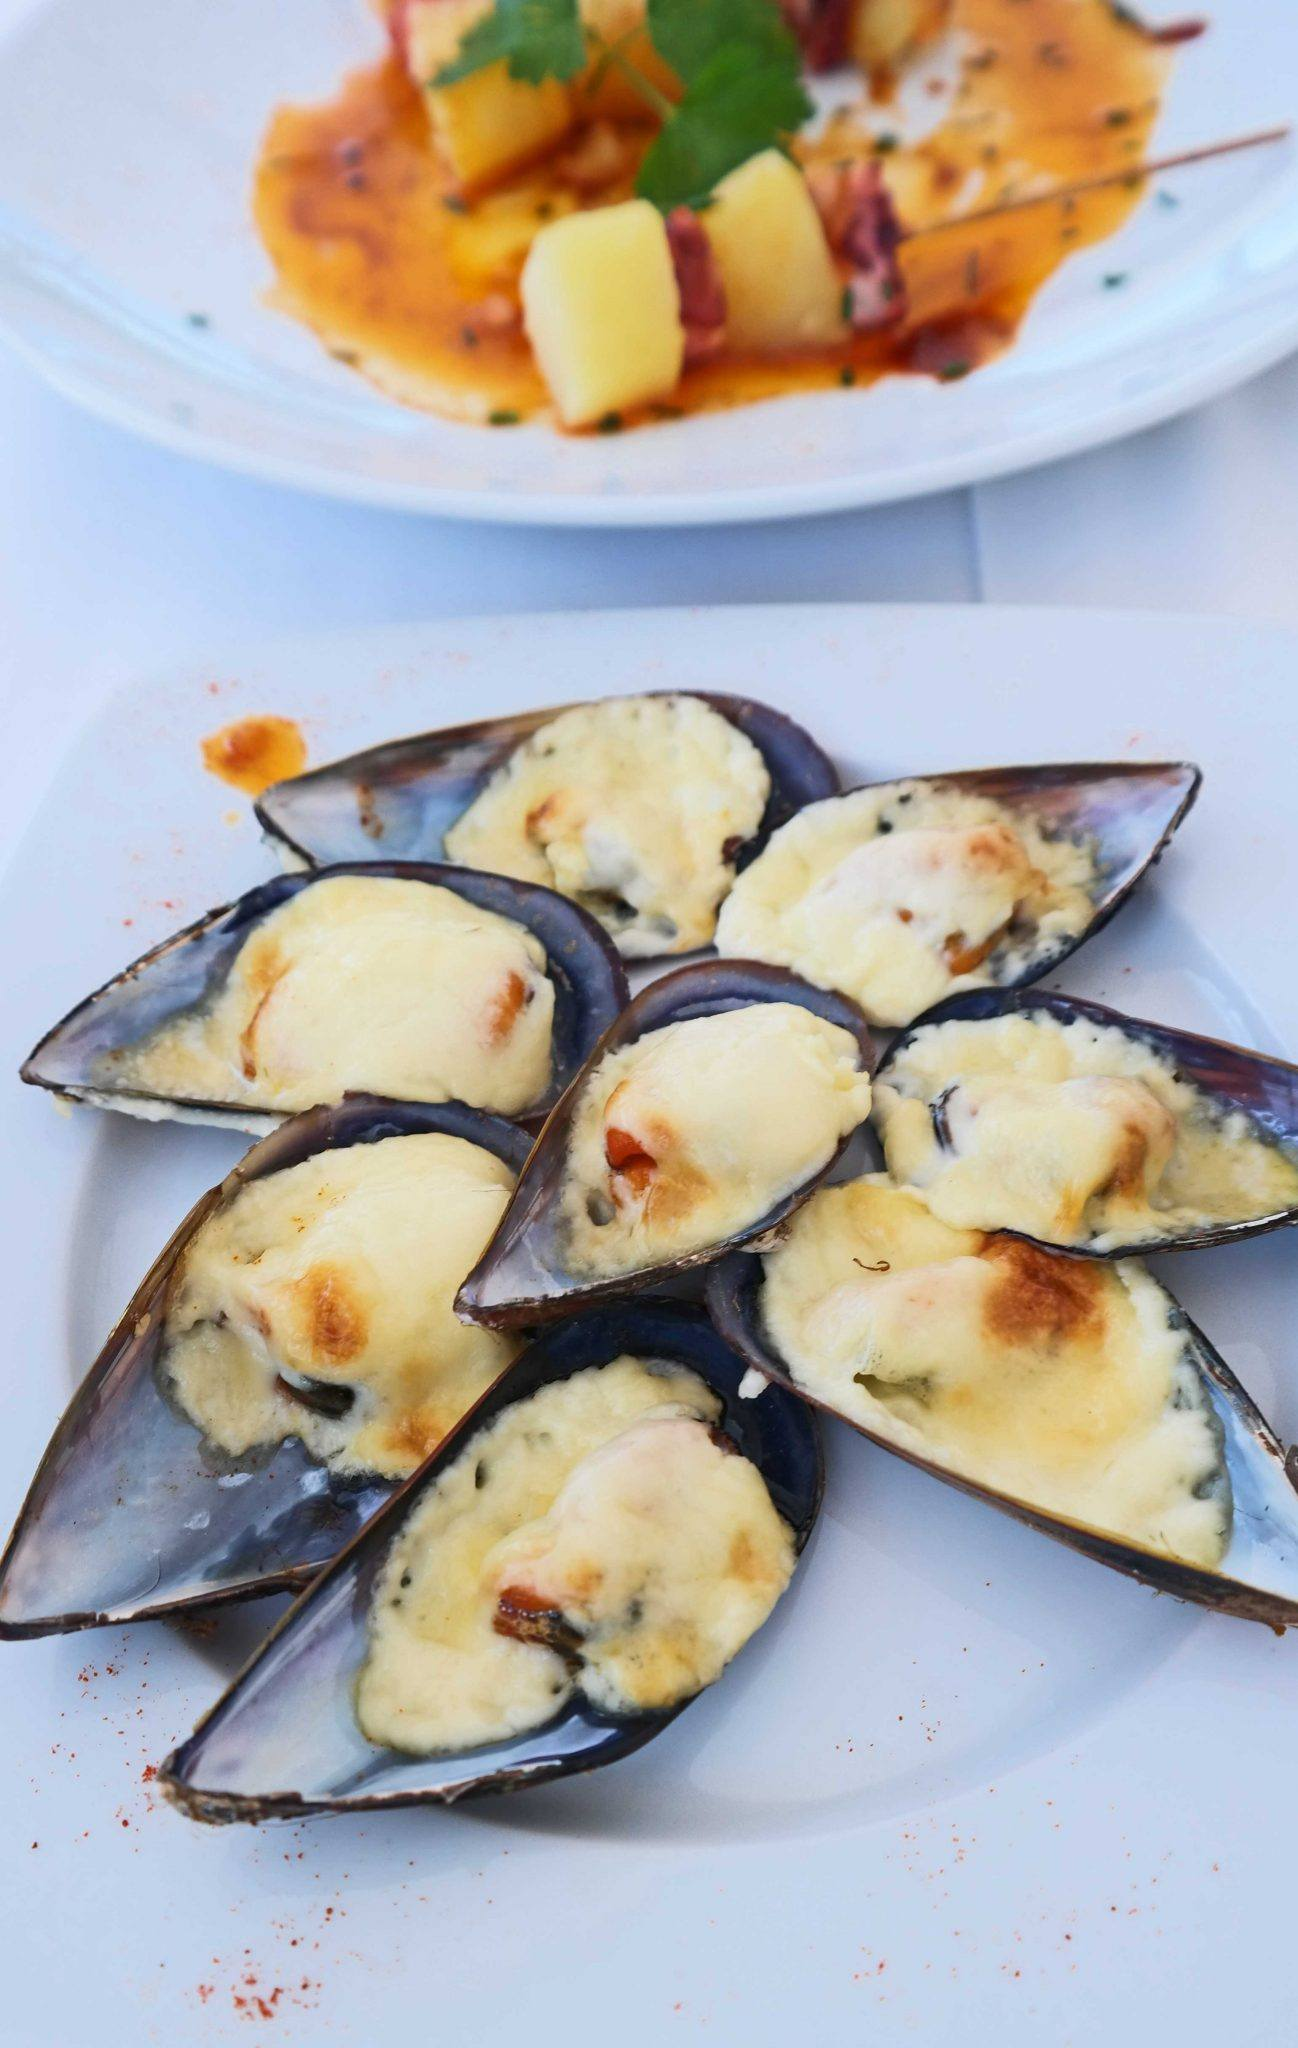 Seafood in Catalonia